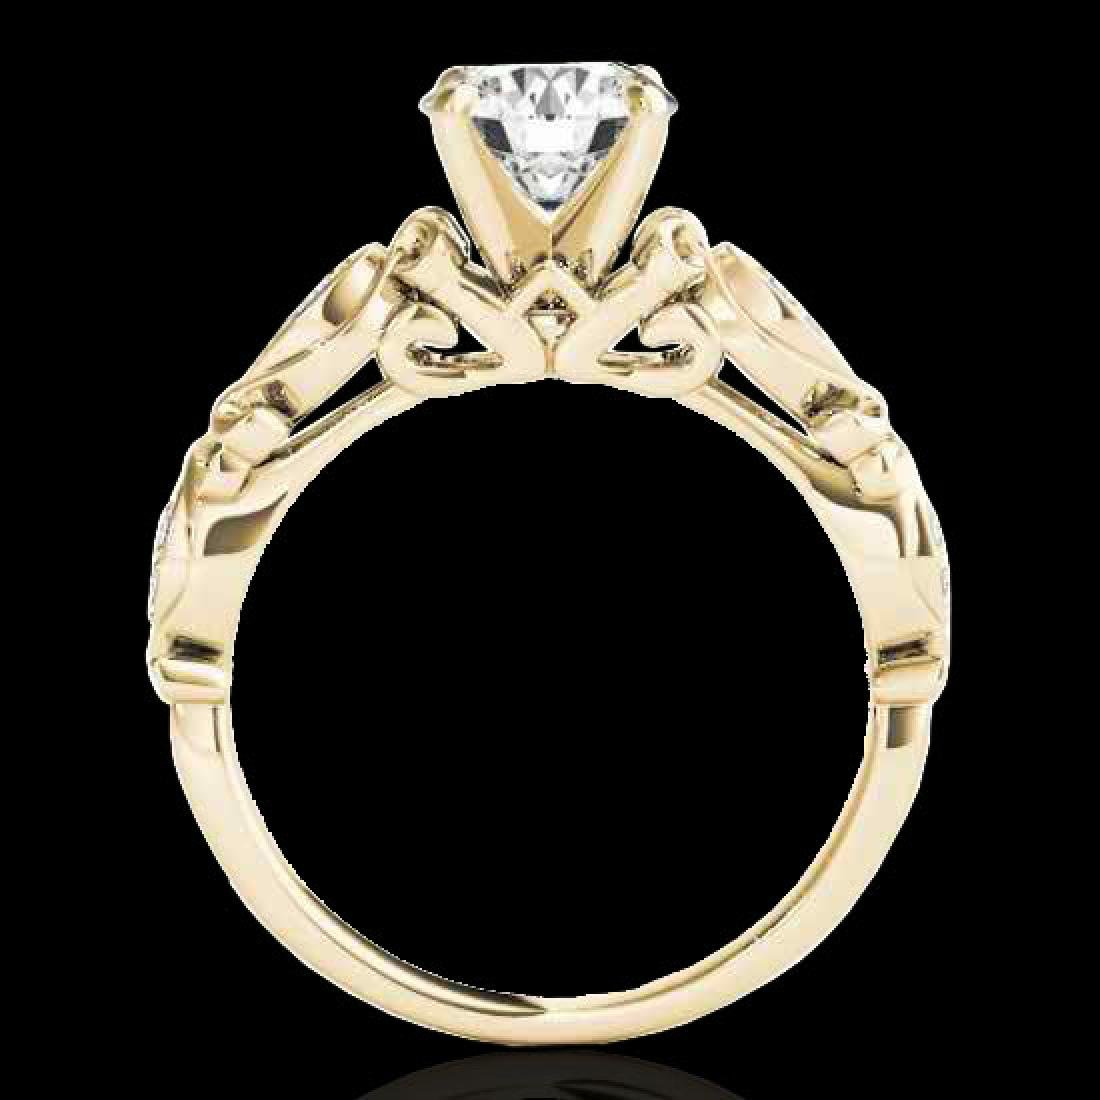 1.1 CTW H-SI/I Certified Diamond Solitaire Antique Ring - 2